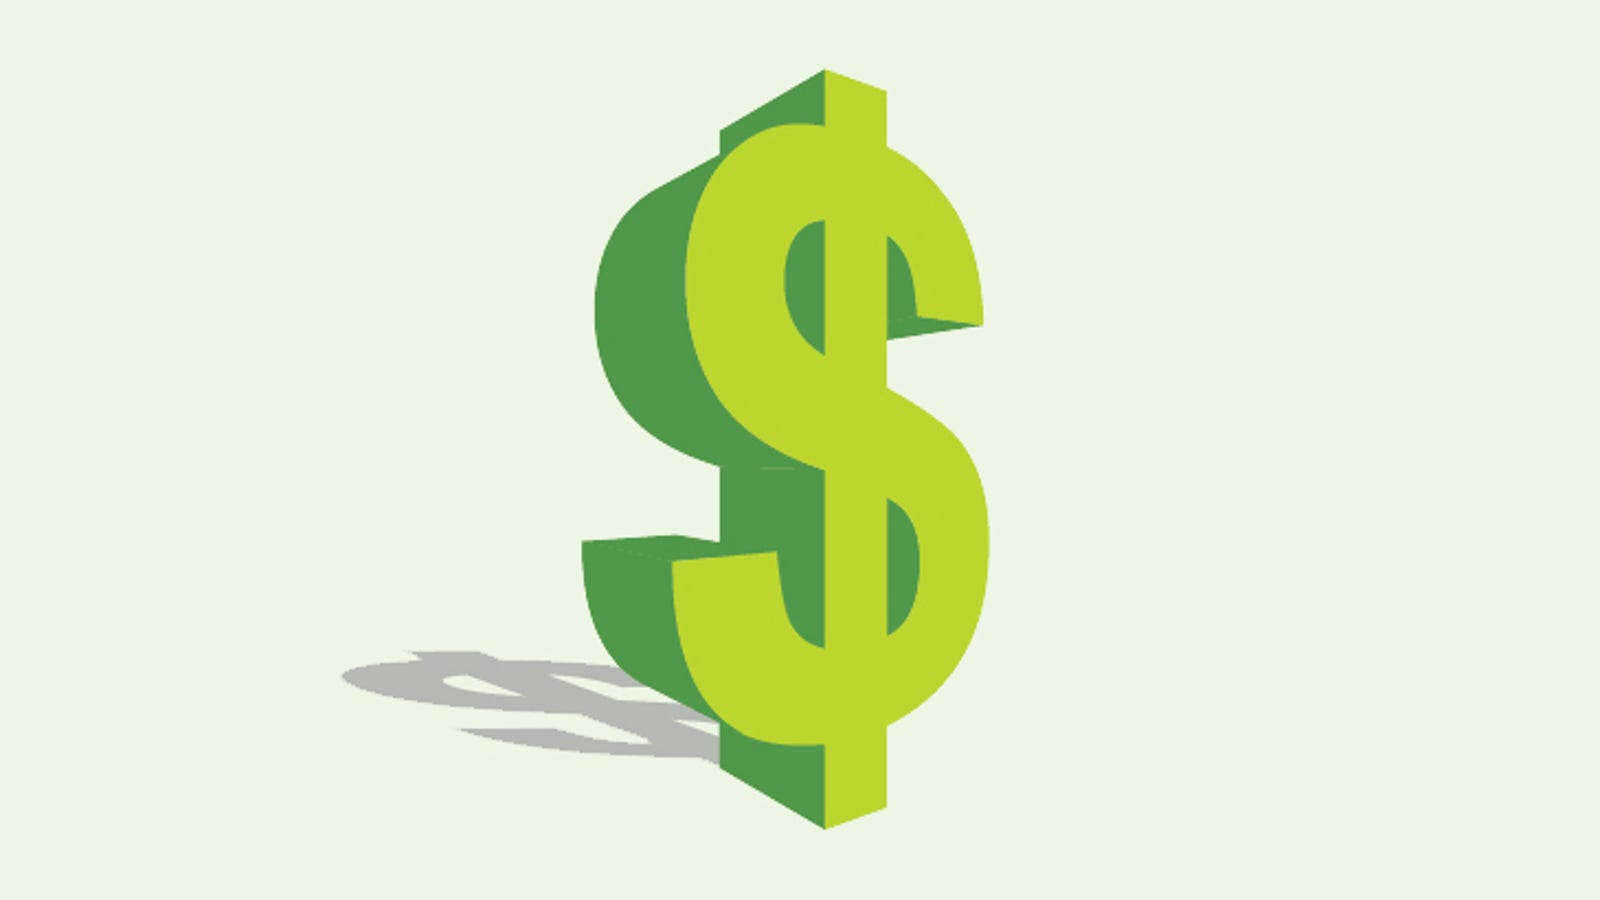 Where The Dollar Sign Comes From